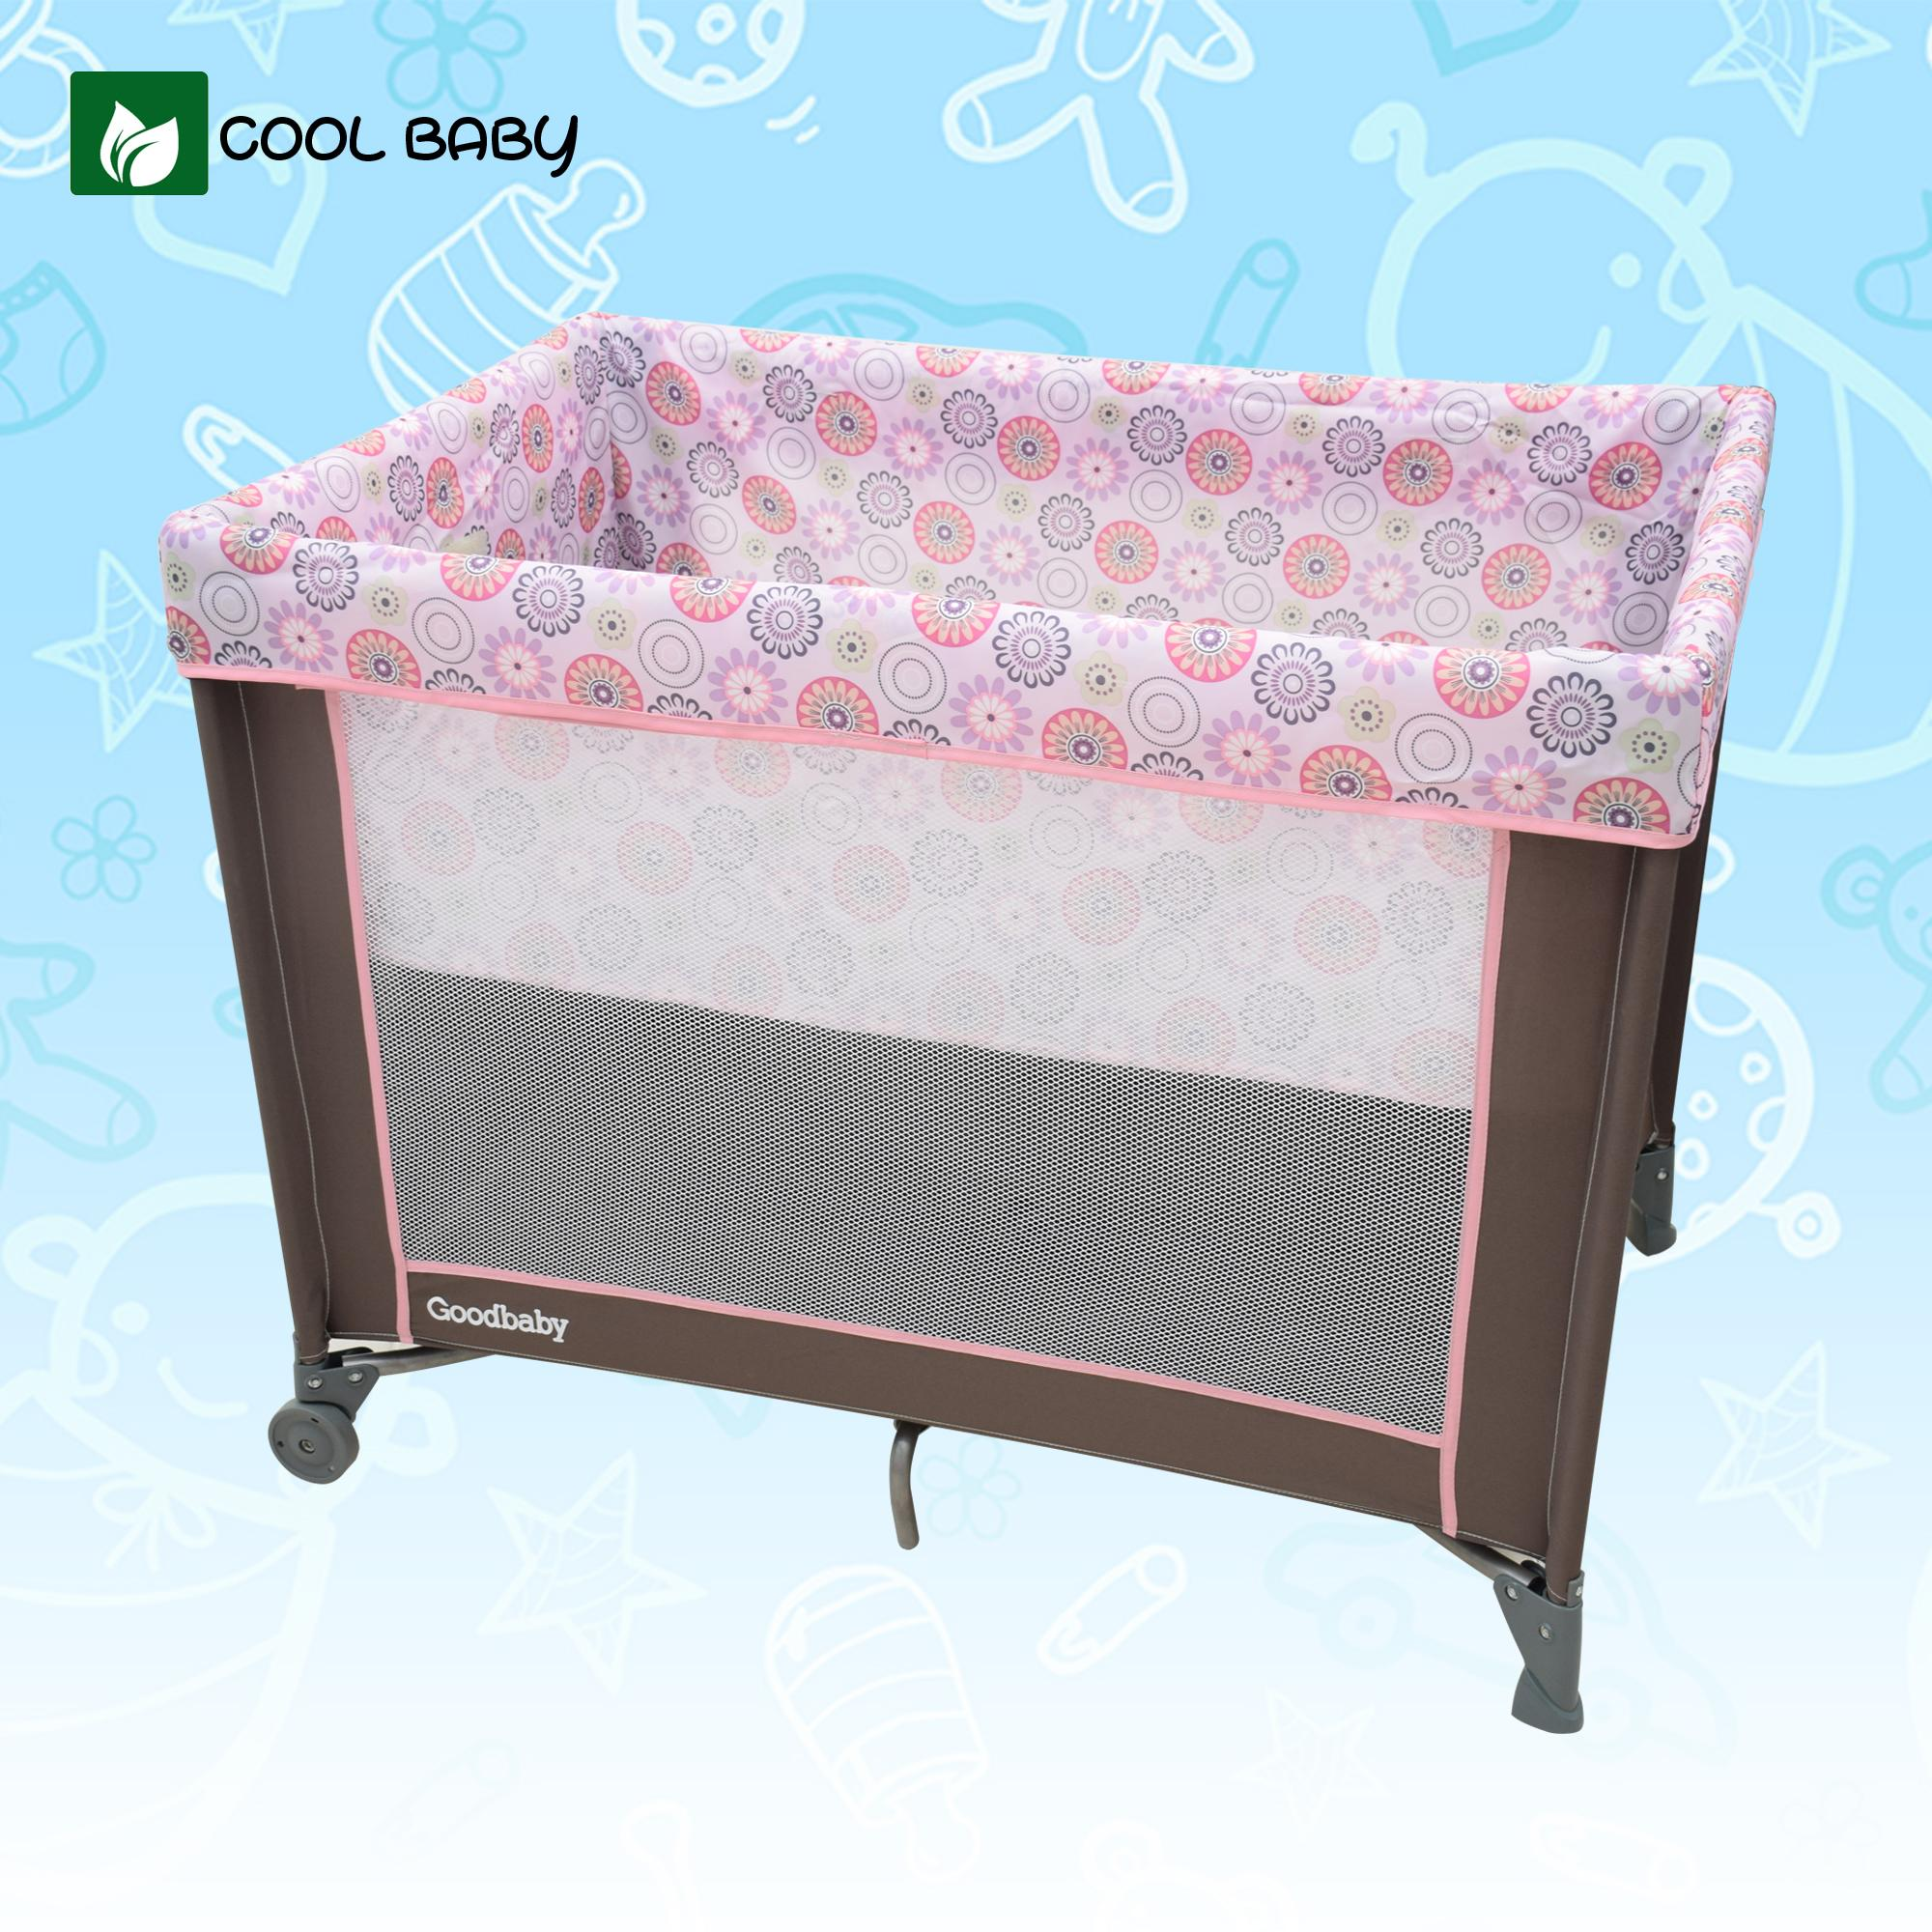 Cool Baby H942z 4/11 Baby Crib Nursery Playpen By Cool Baby.